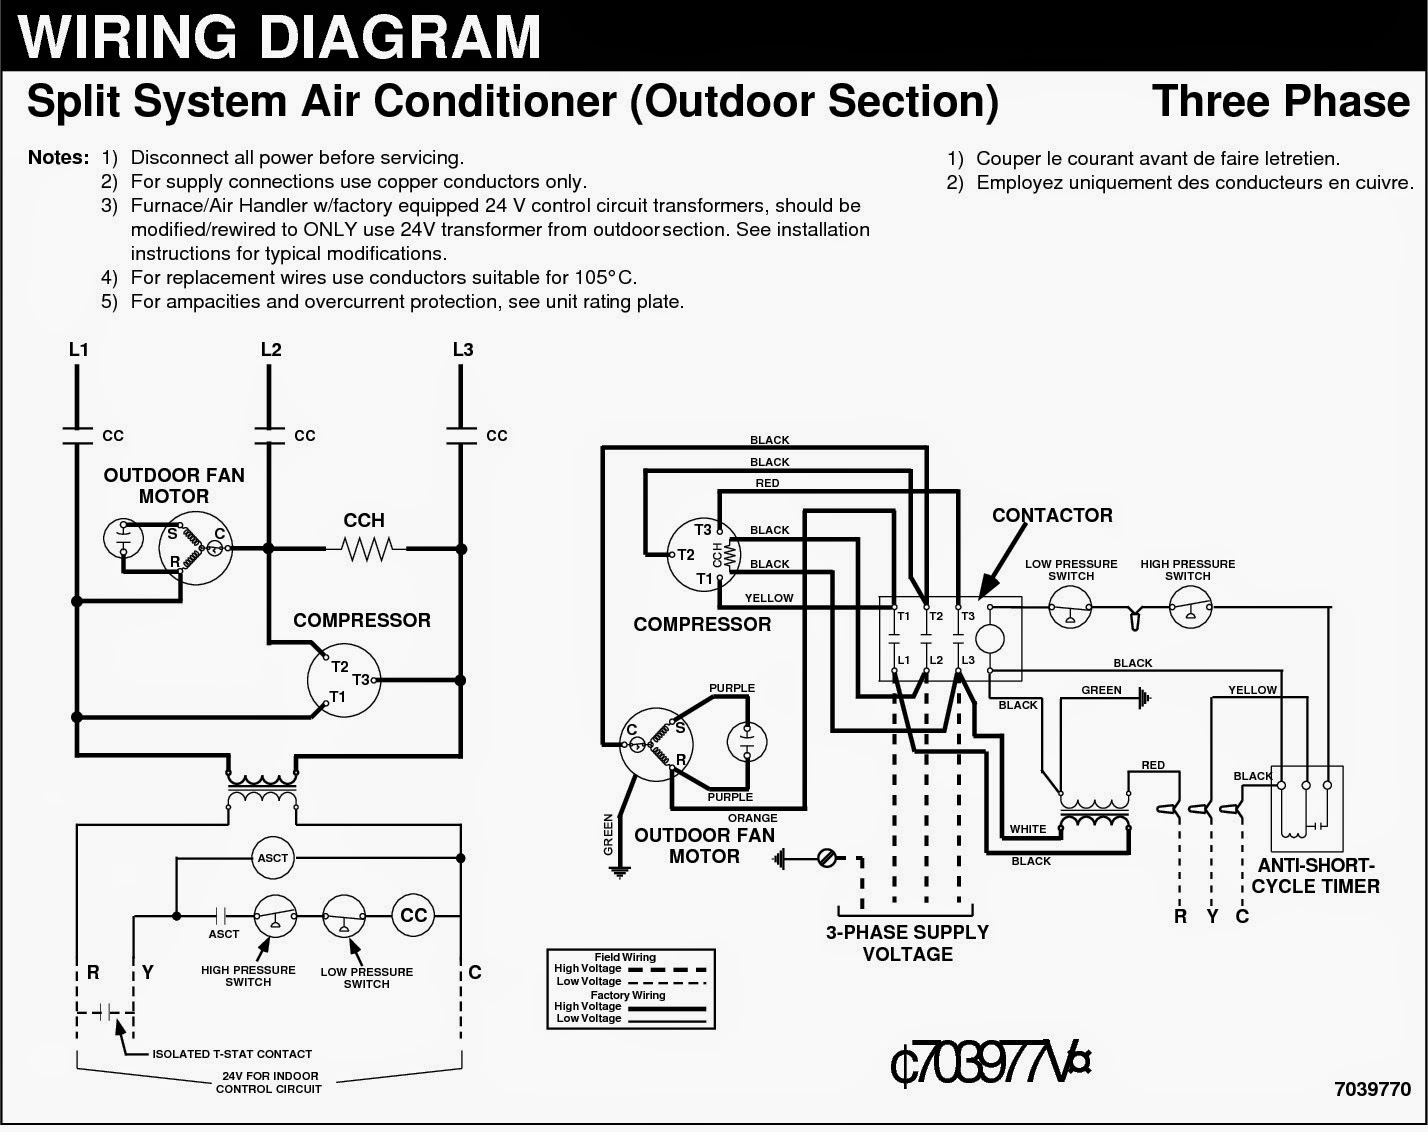 3+phase electrical wiring diagrams for air conditioning systems part two electrical control wiring diagrams at mr168.co